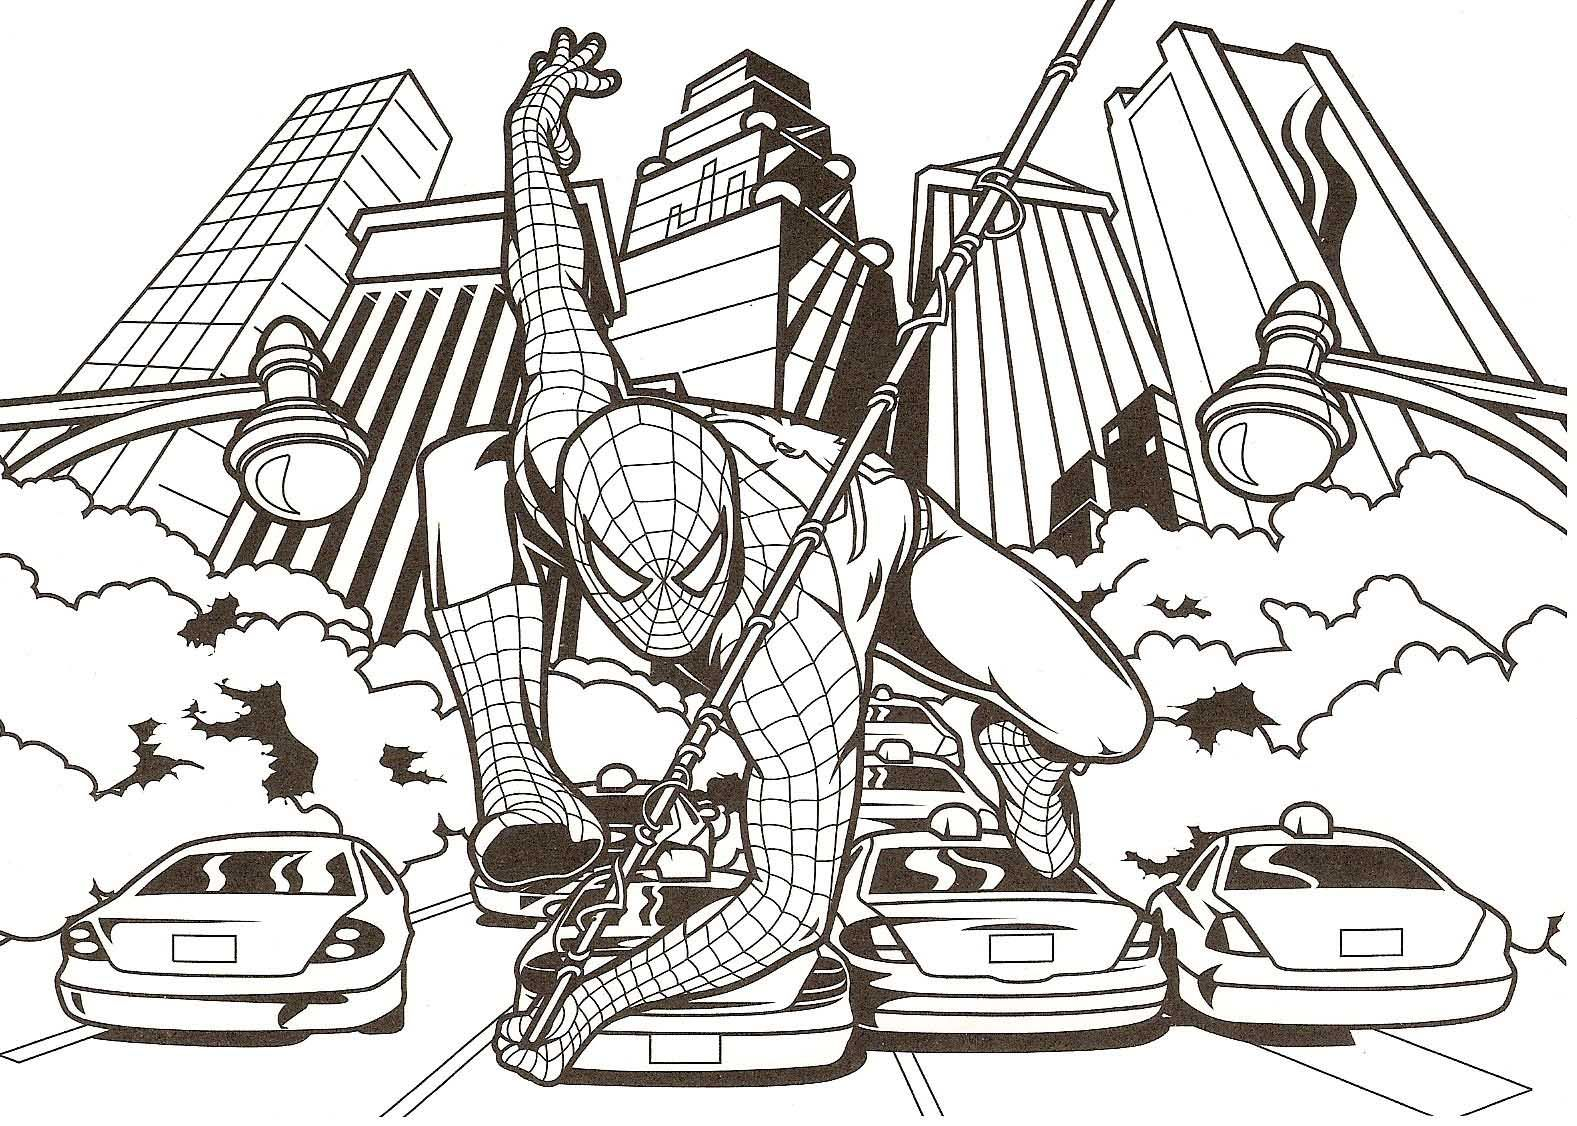 Spiderman online coloring pages for kids - Amazing Spiderman Coloring Pages Printable And Coloring Book To Print For Free Find More Coloring Pages Online For Kids And Adults Of Amazing Spiderman